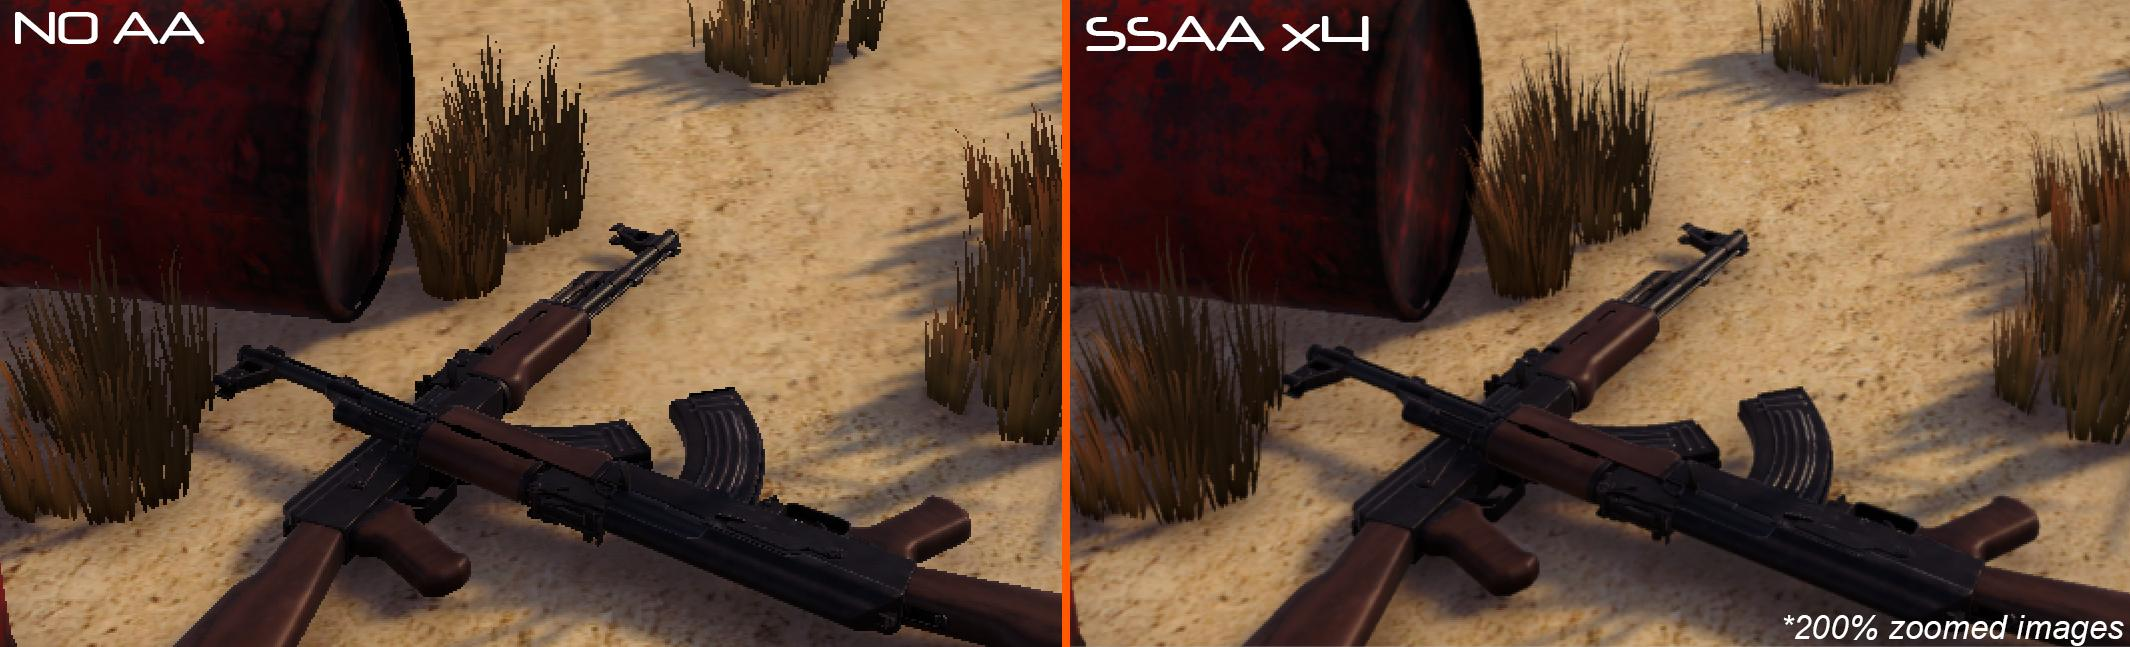 Unity and Unreal Engine: Real-time Rendering VS Traditional 3DCG